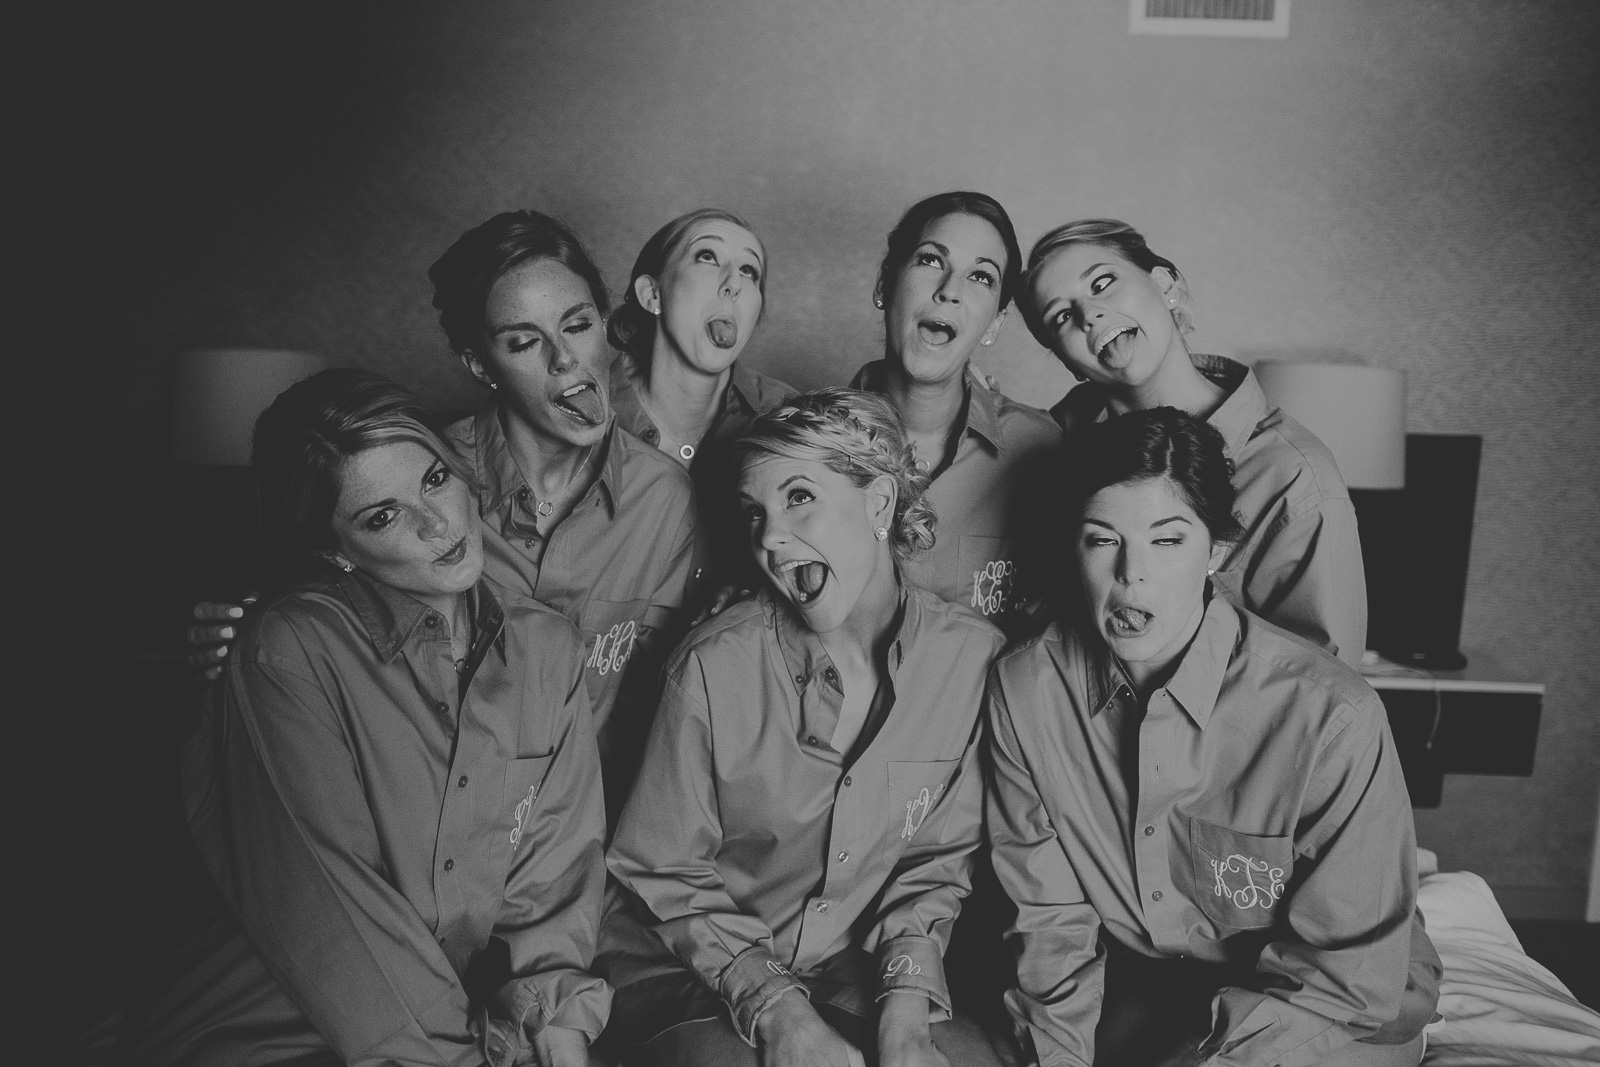 12 bridesmaids being goofy